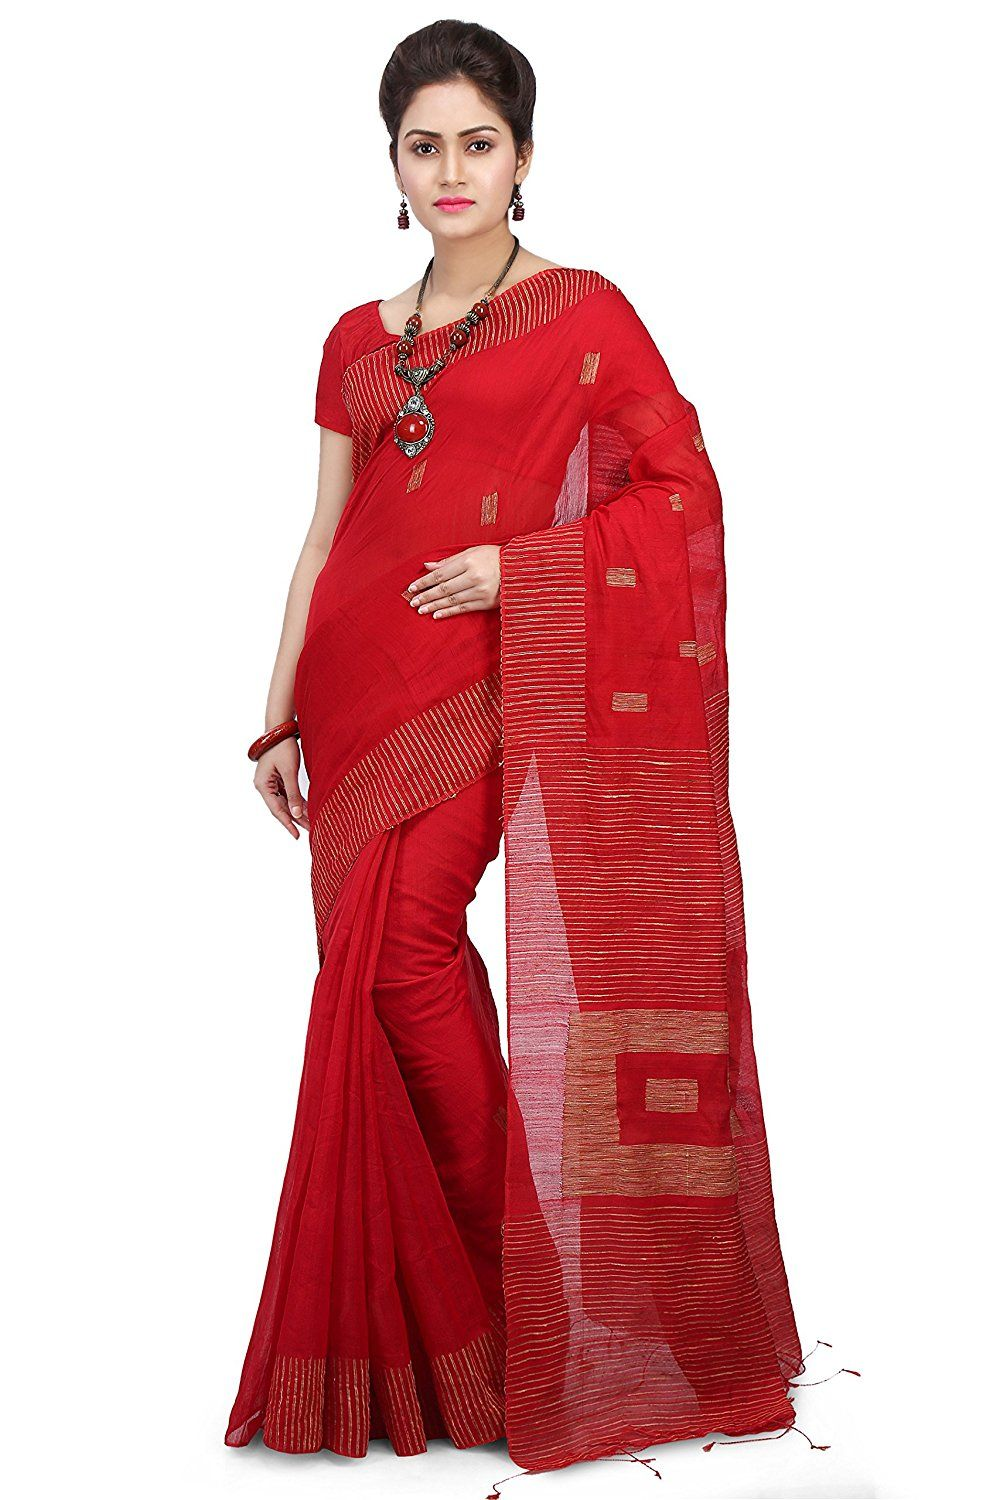 70f986a829cb74 Saree length is 6.5 meter and Width is 1.2 meter. With 0.9 meter blouse  piece